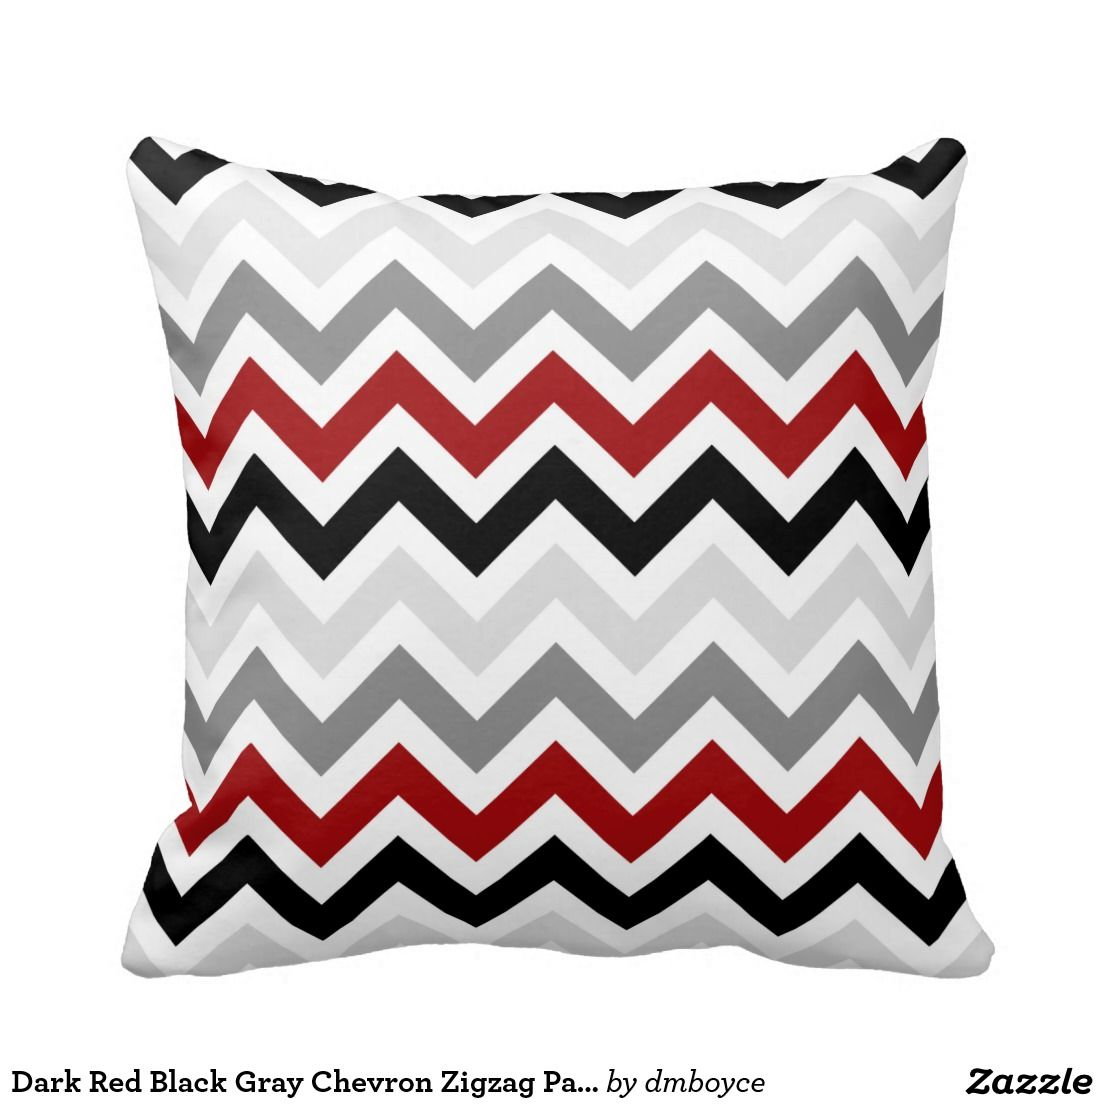 Dark Red Black Gray Chevron Zigzag Pattern Throw Pillow Zazzle Com Pillow Pattern Black Throw Pillows Patterned Throw Pillows